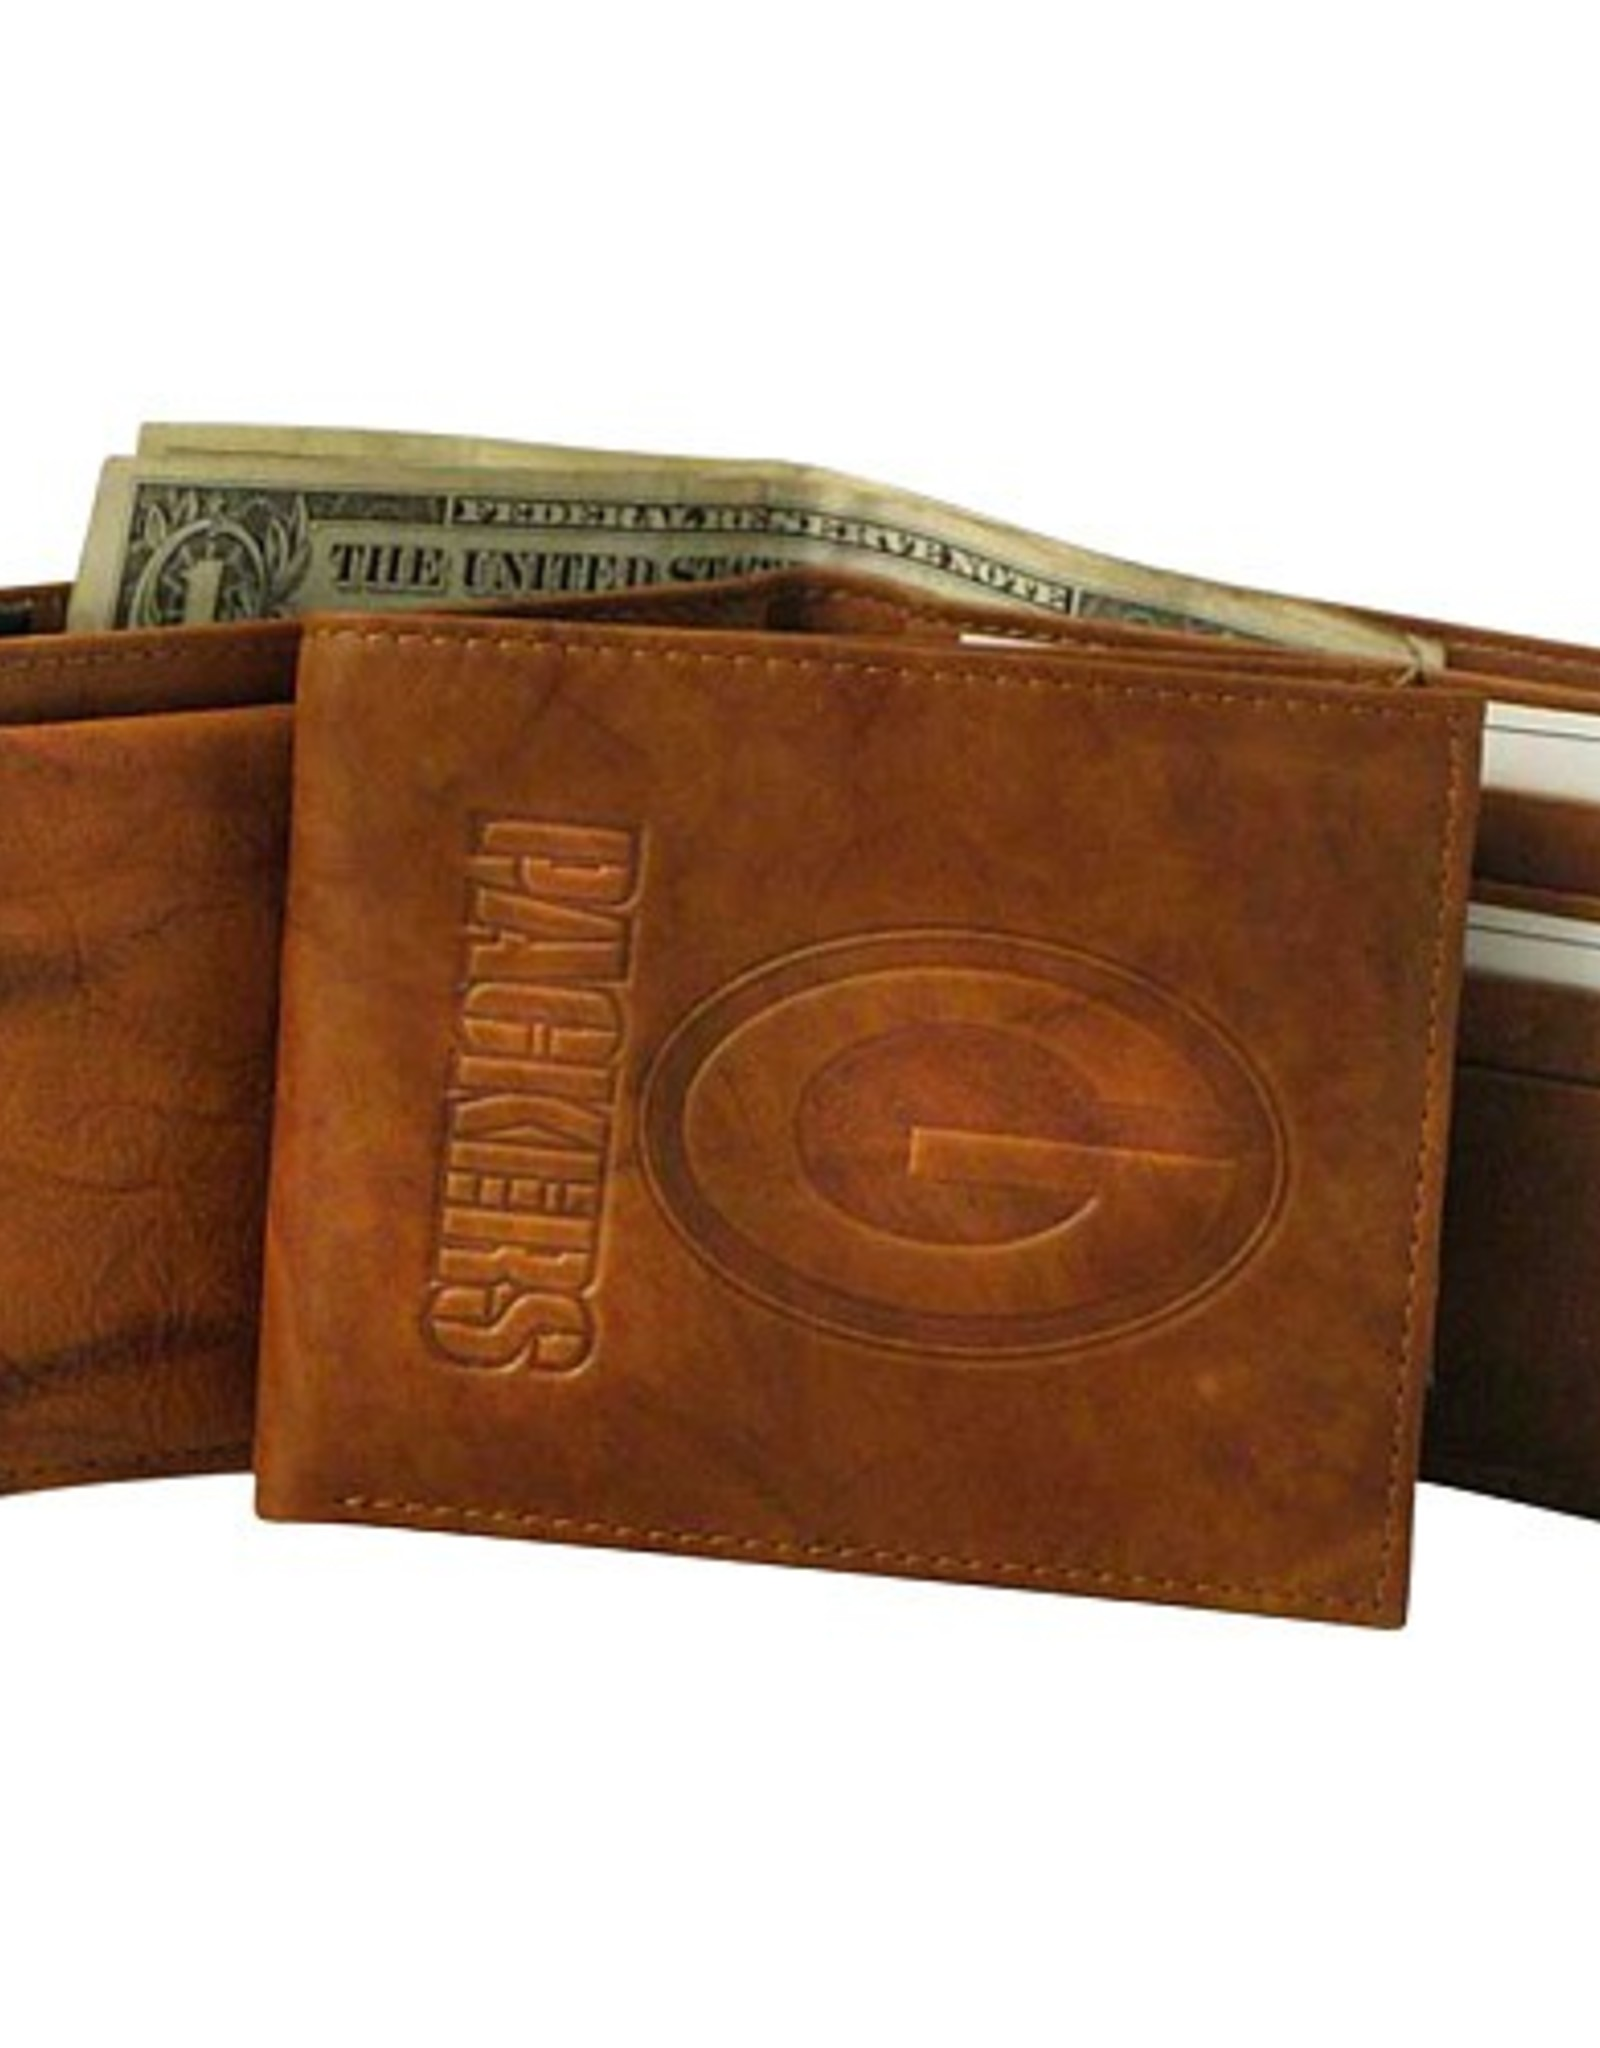 RICO INDUSTRIES Green Bay Packers Genuine Leather Vintage Billfold Wallet